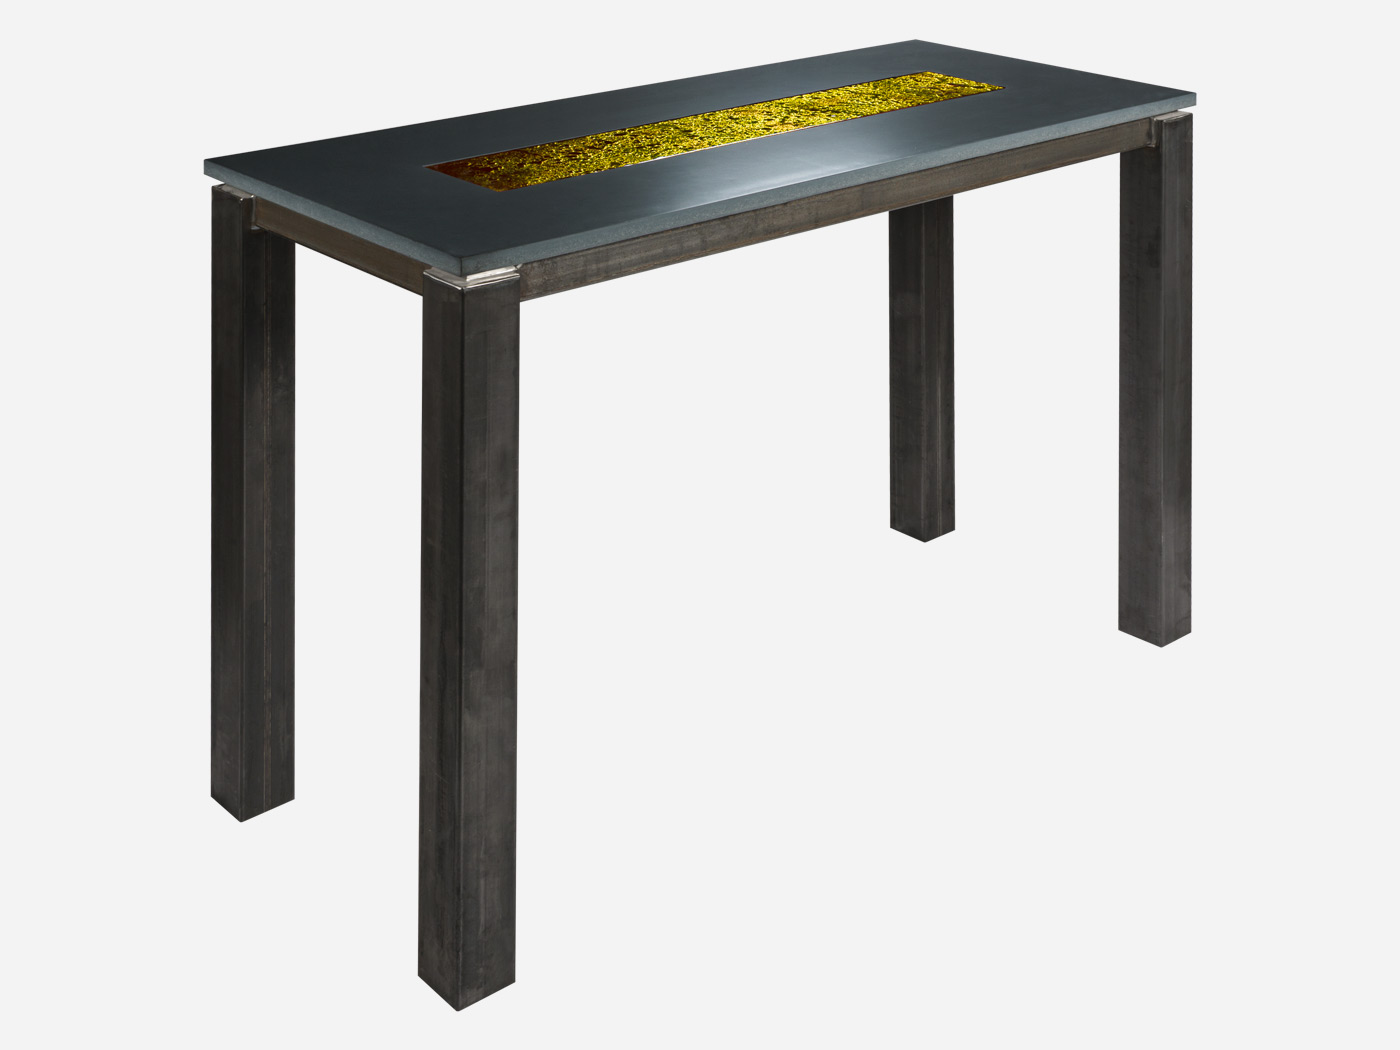 Table haute rectangle avec verre de Murano doré | Roc de France